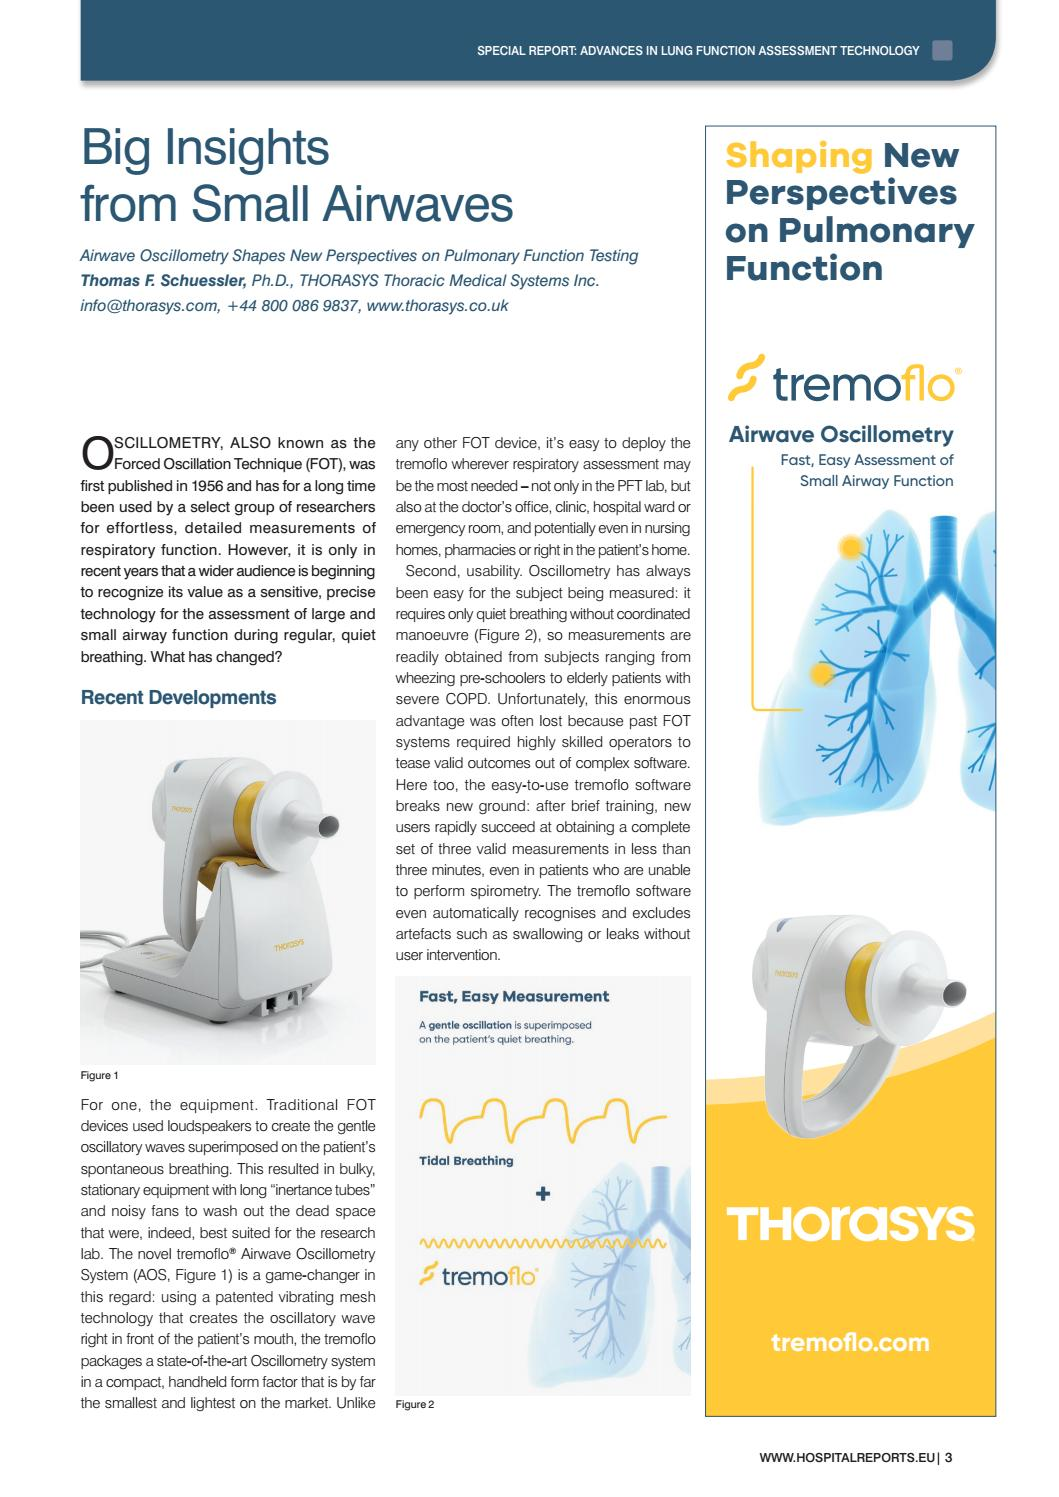 Hospital Reports Europe – Advances in Lung Function